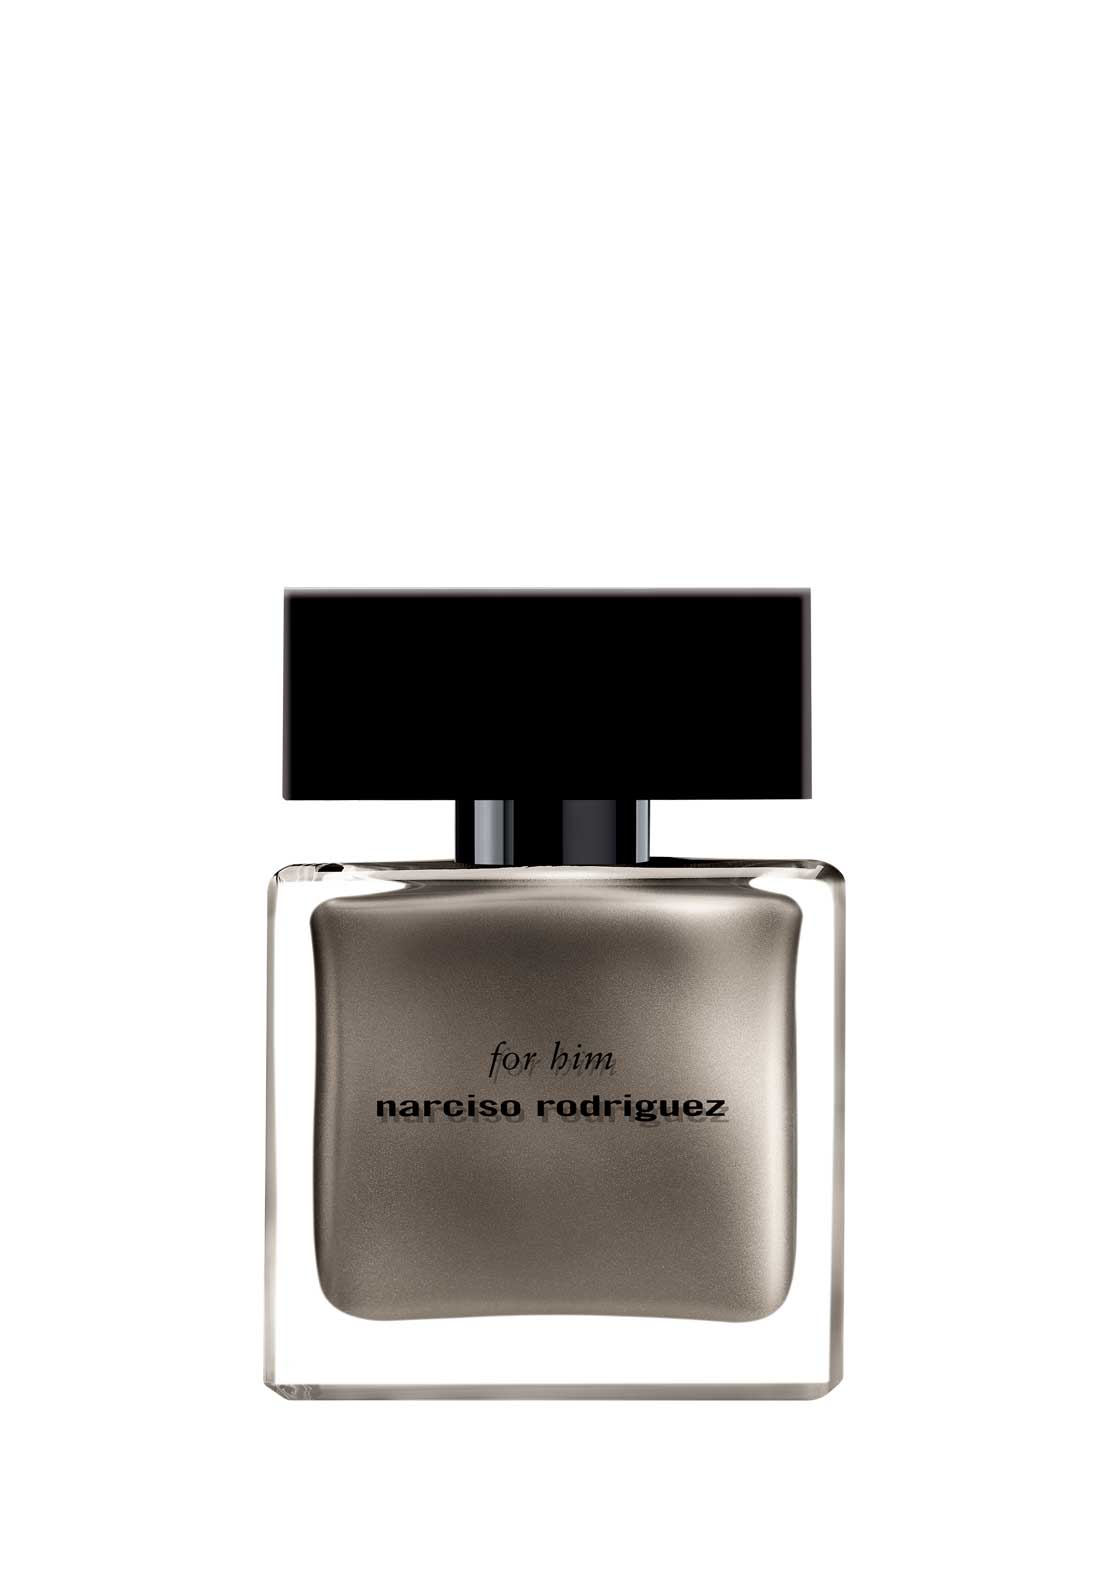 Narciso Rodriguez Narciso Rodriguez for him, 50ml